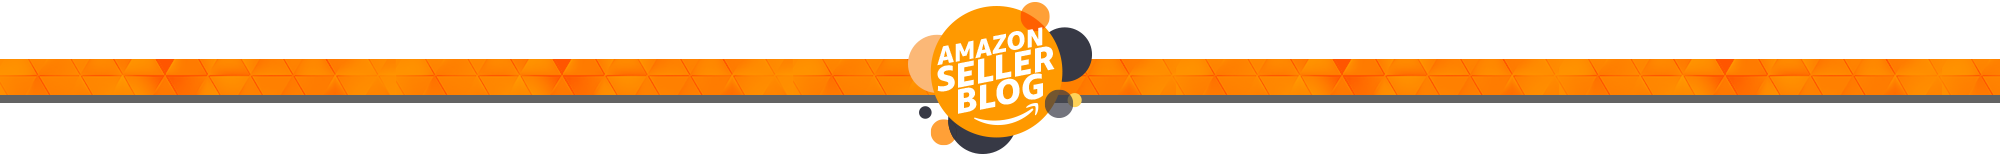 Amazon Seller Blog